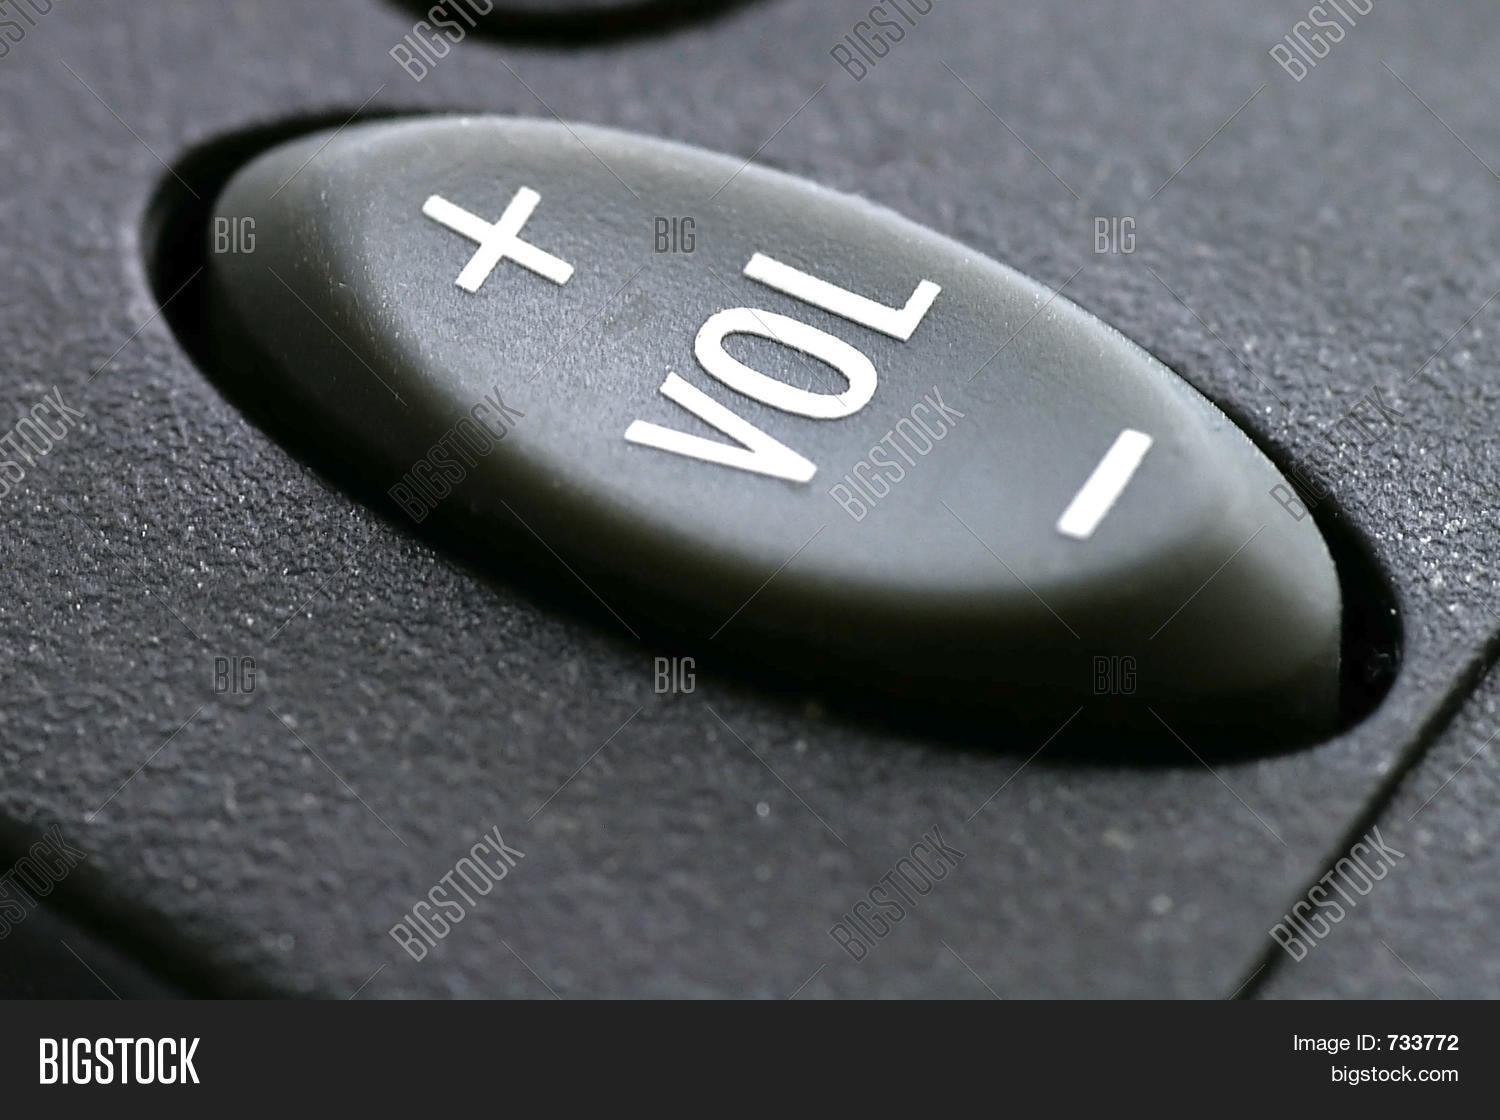 Remote Volume Control : Remote control volume button image photo bigstock